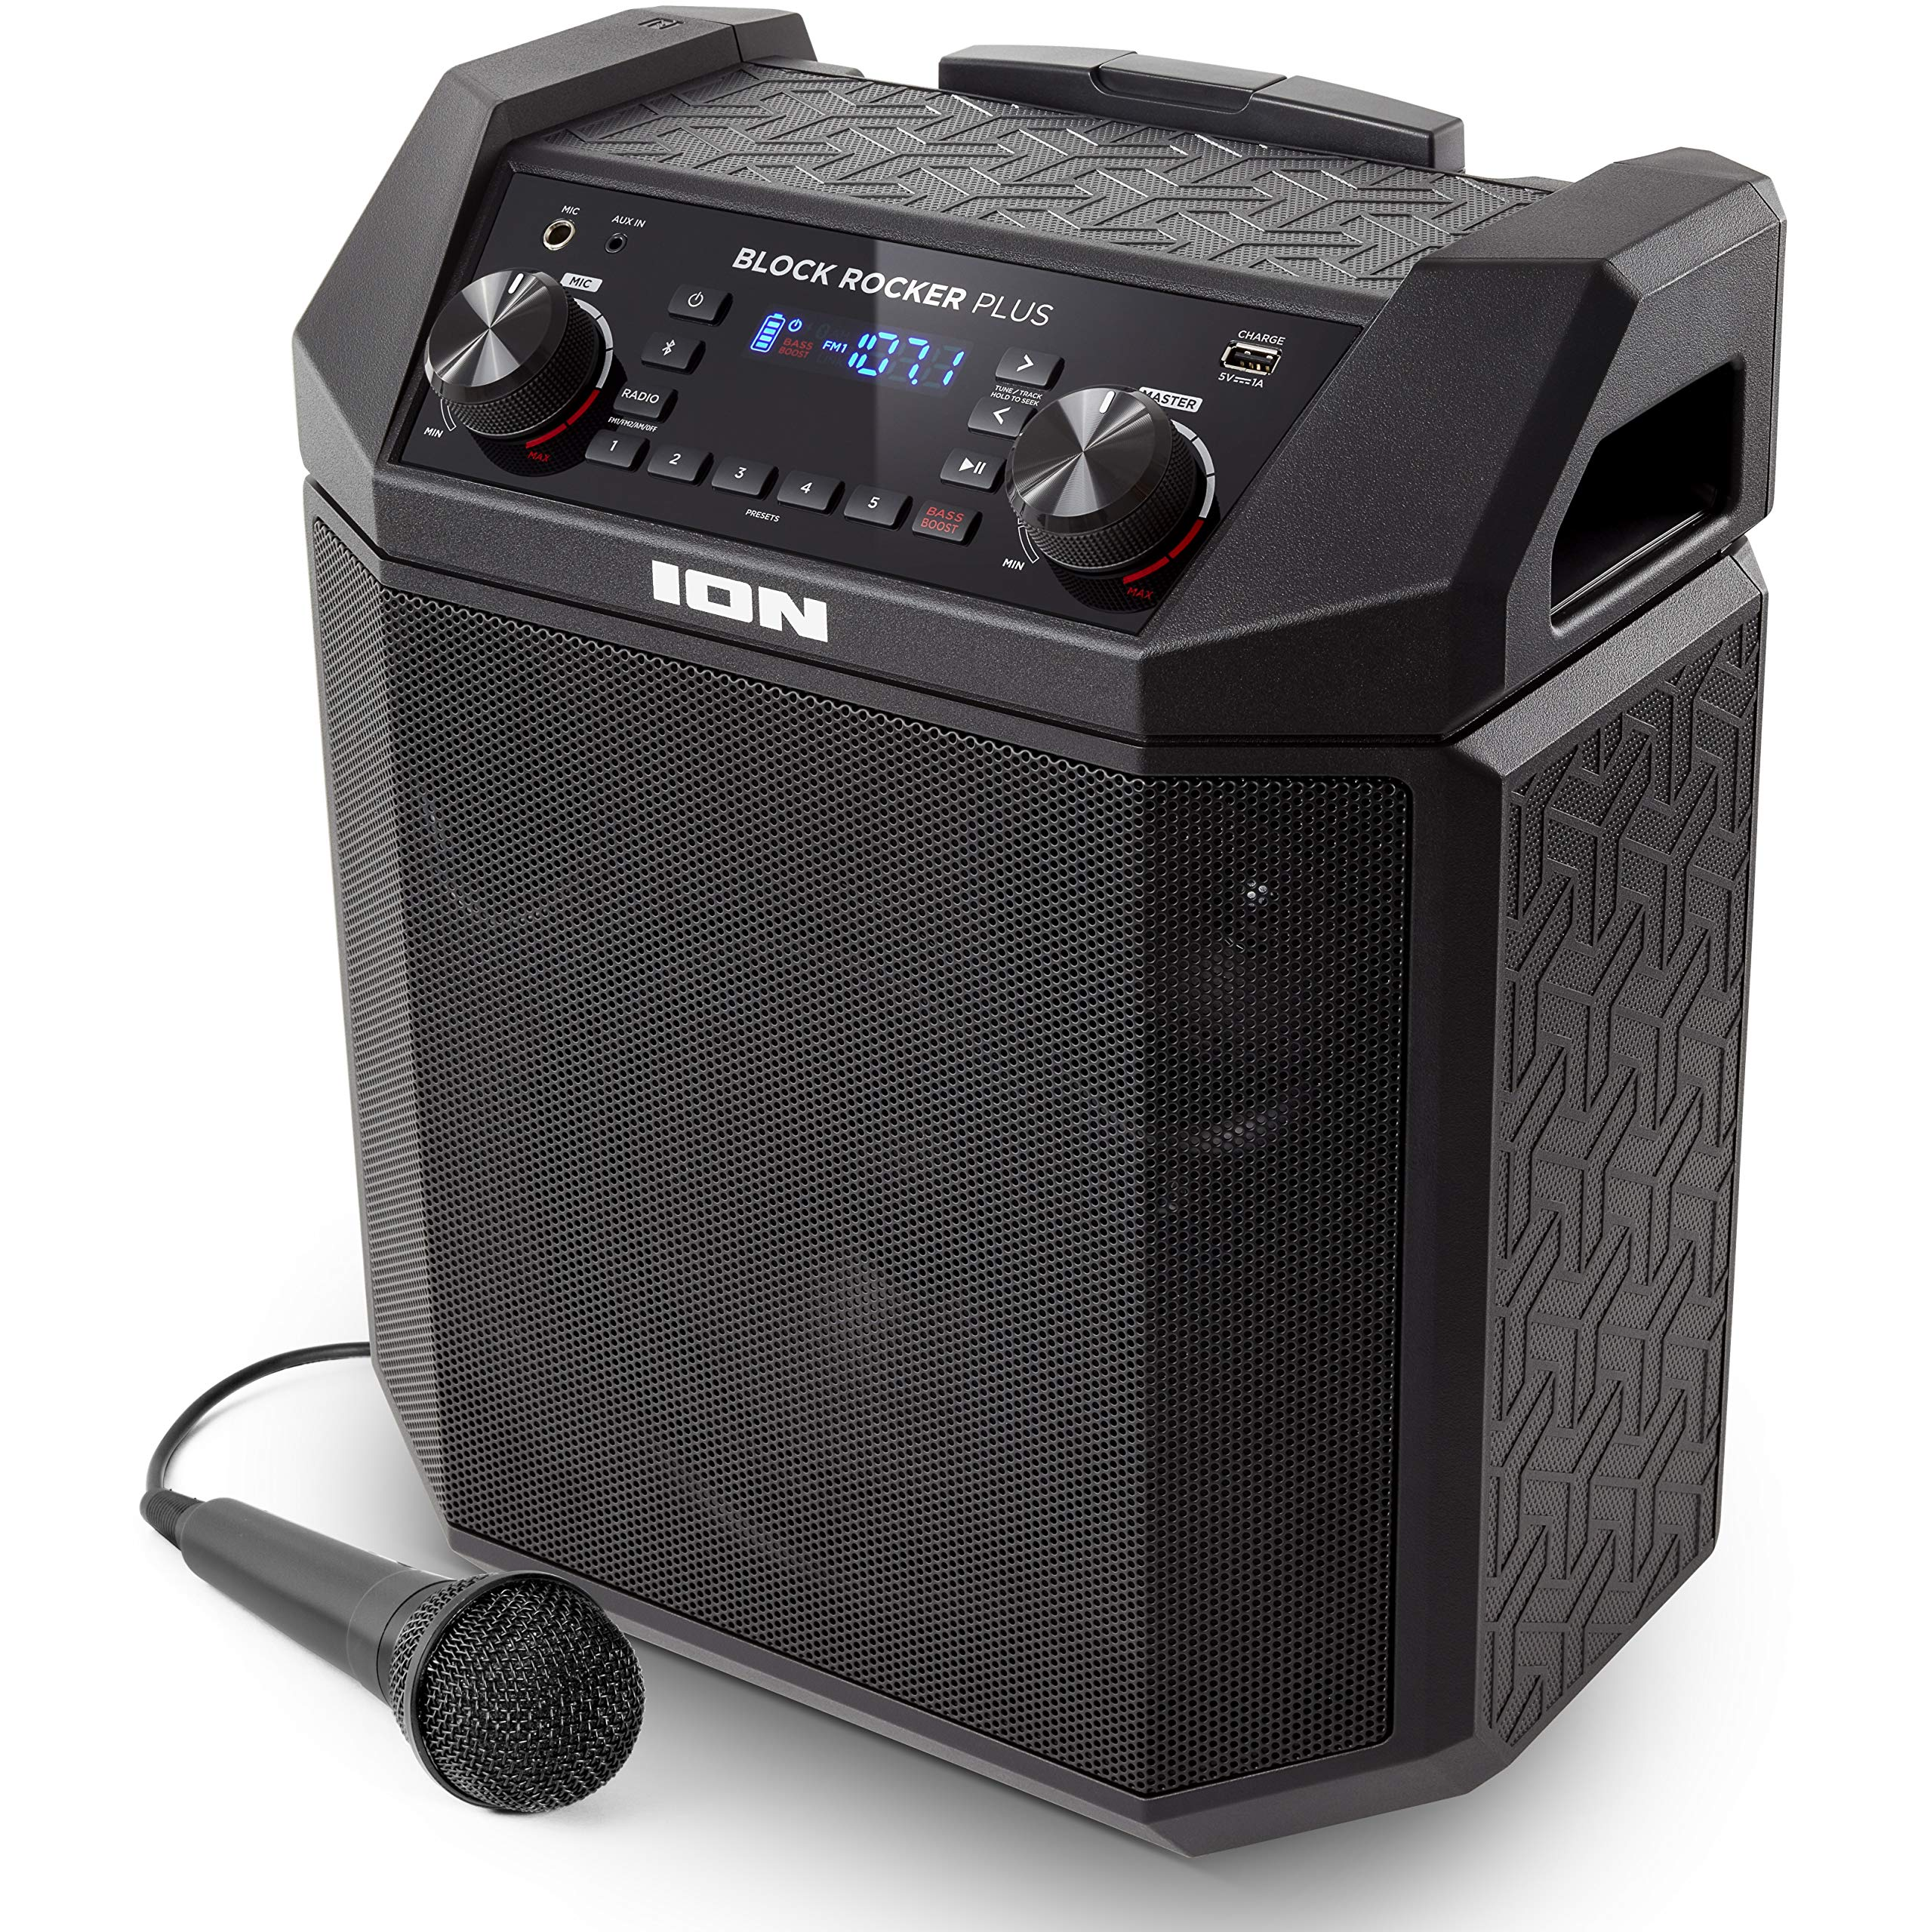 ION Audio Block Rocker Plus | 100W Portable Speaker, Battery Powered with Bluetooth, Microphone & Cable, AM/FM Radio, Wheels & Telescopic Handle and USB Charging For Smartphones & Tablets by ION Audio